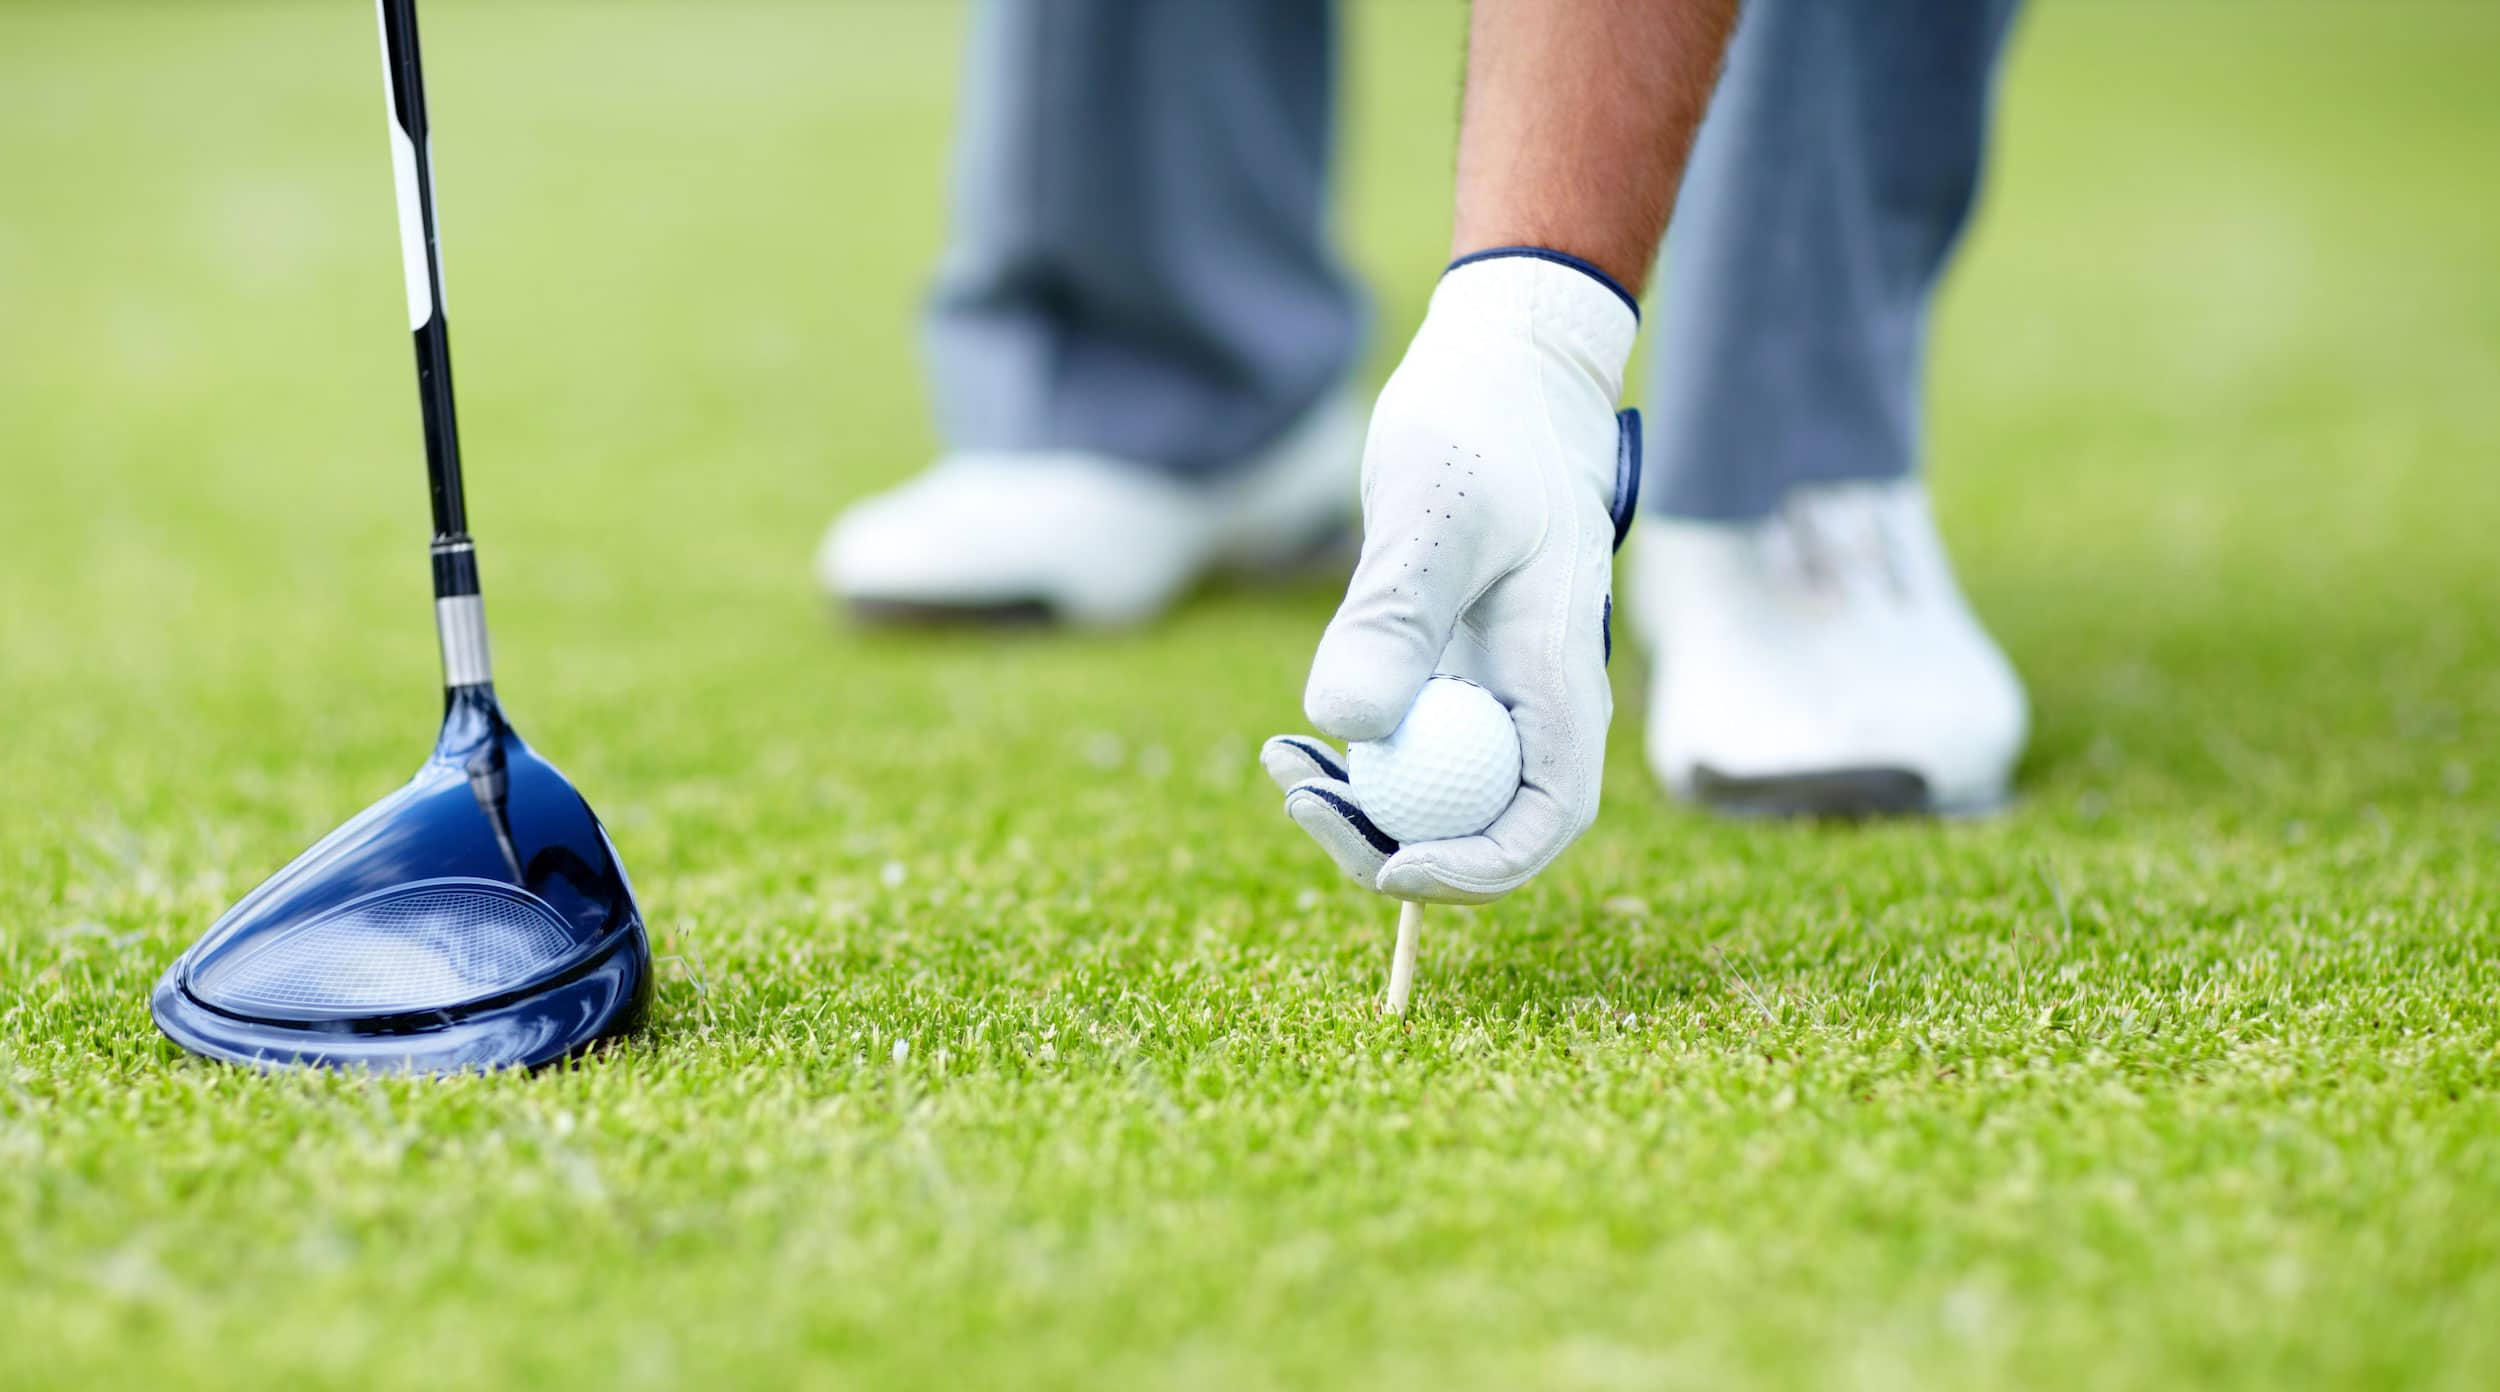 Worst Things You Can Do On A Golf Course